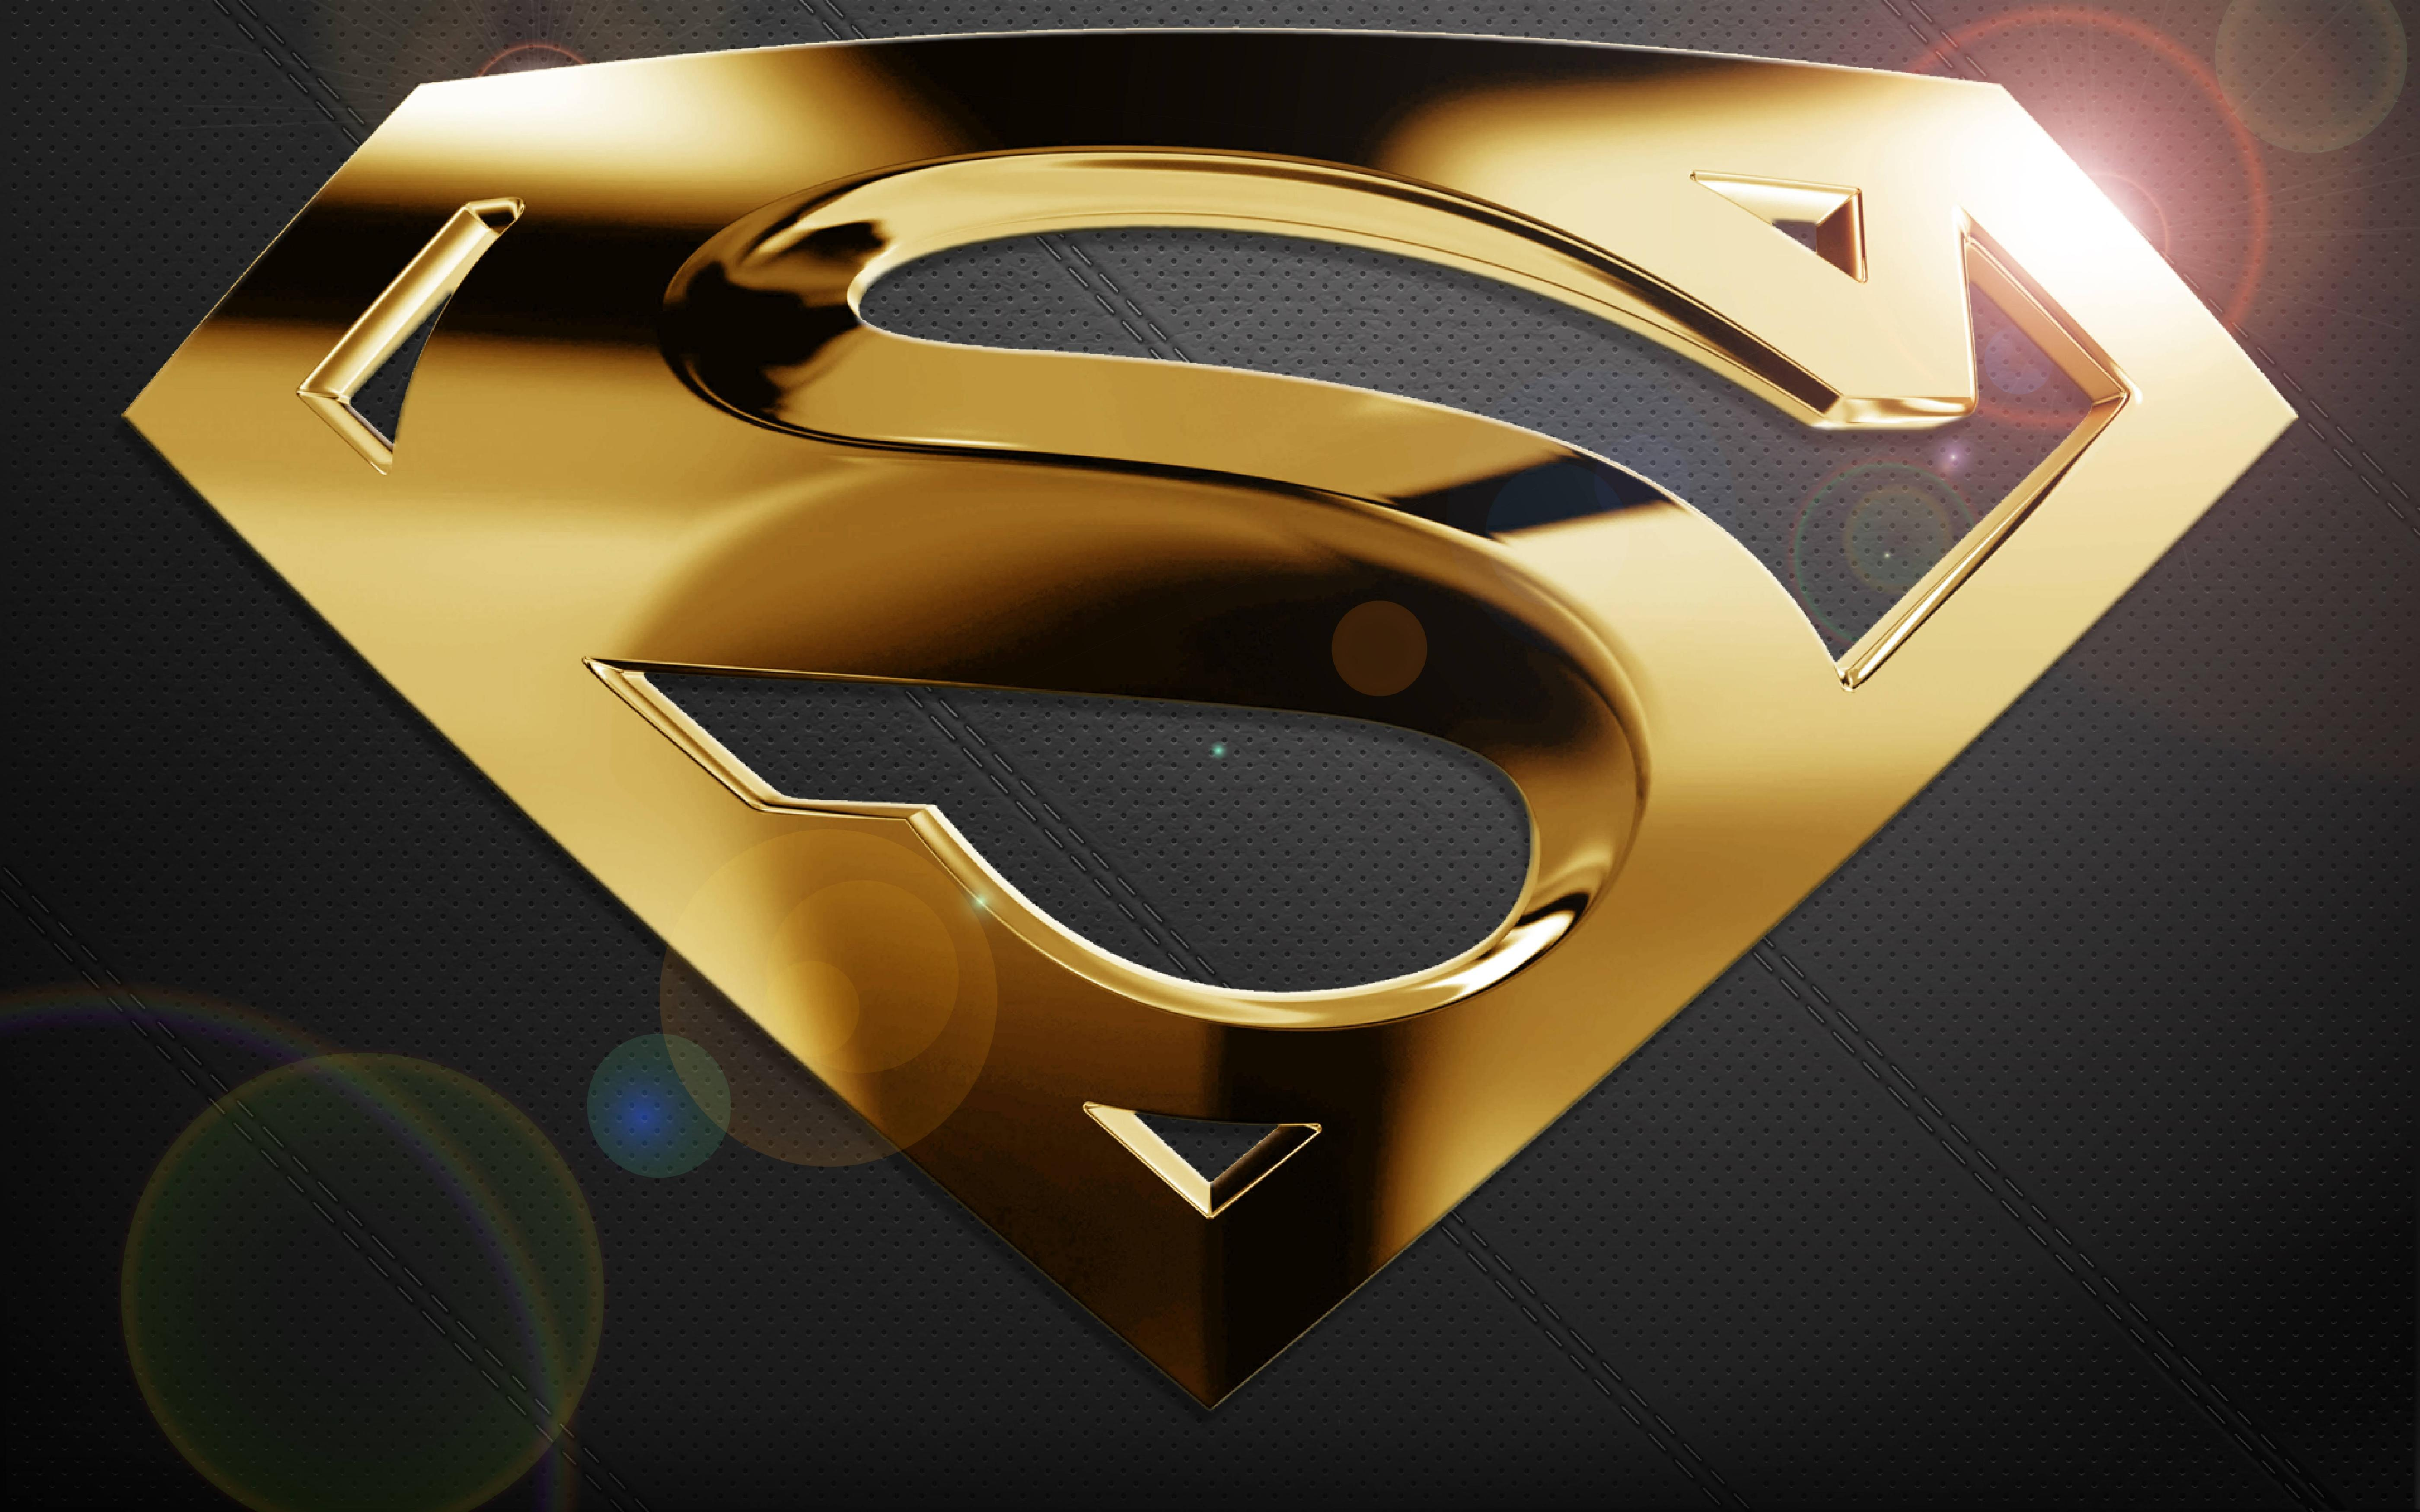 Black Superman Logo Wallpapers Image & Pictures